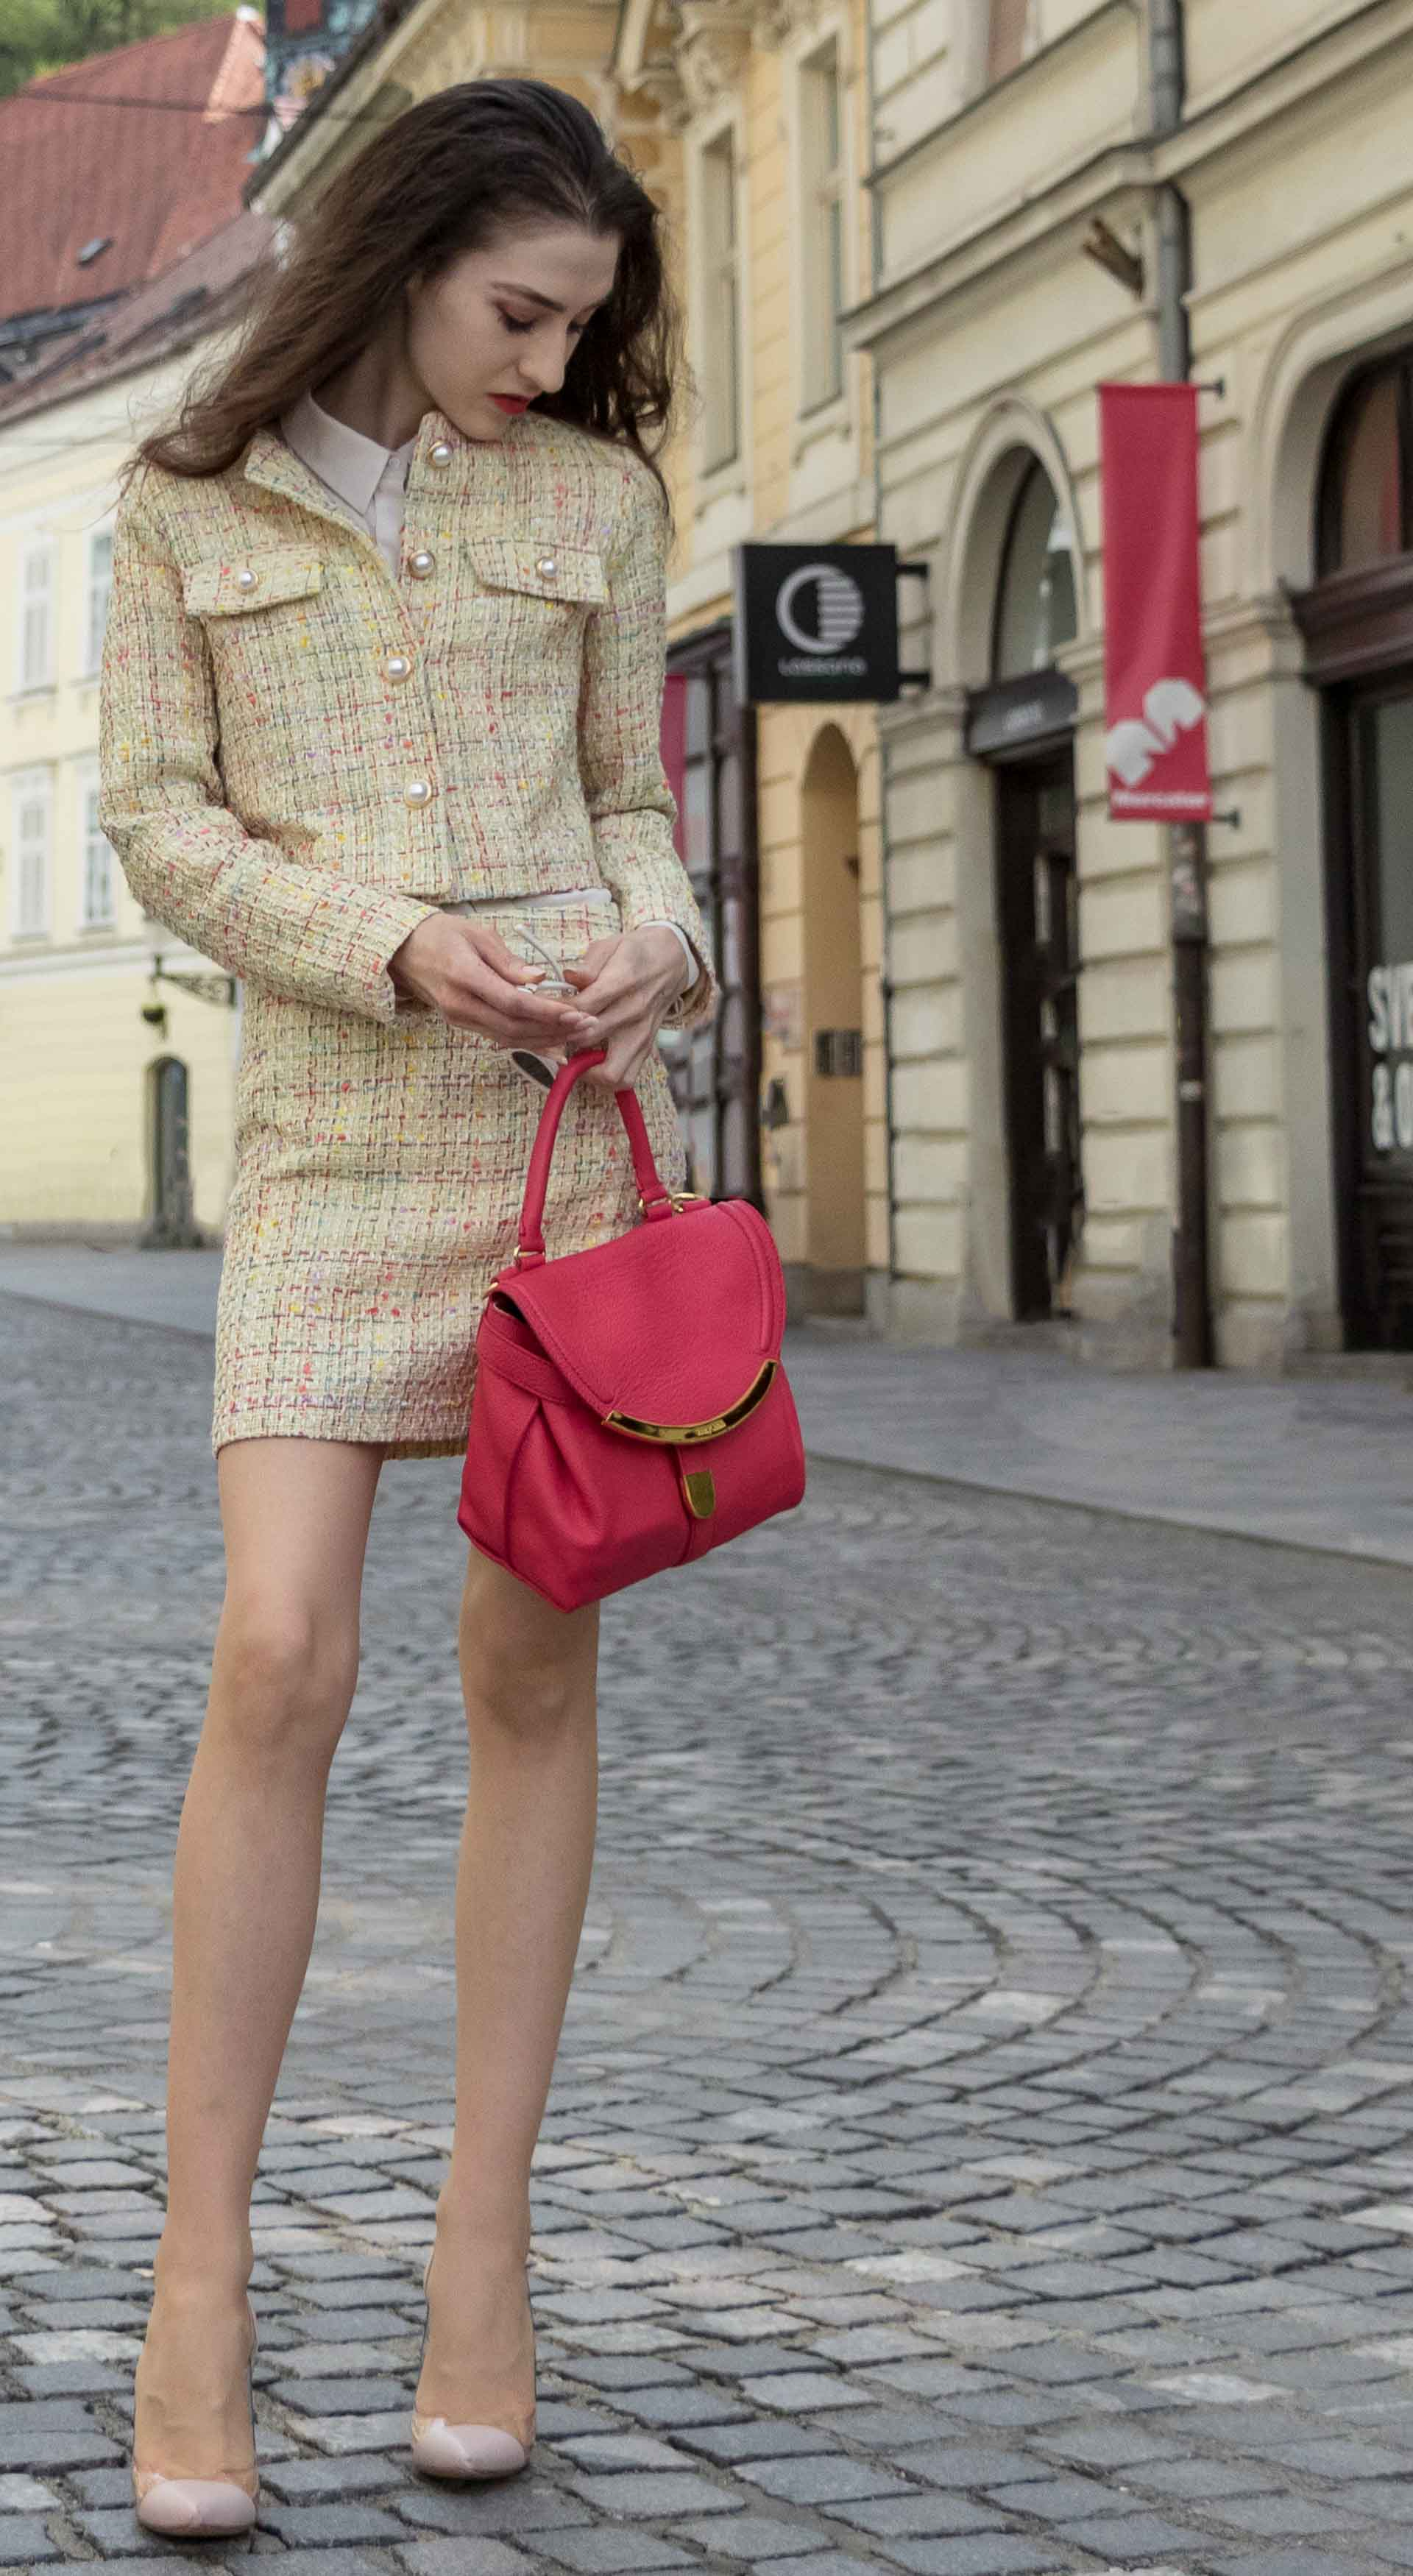 Fashion Blogger Veronika Lipar of Brunette from Wall Street dressed in Storets yellow tweed mini skirt suit, Gianvito Rossi plexi pumps, See by Chloe pink top handle bagfor doctor's appointment